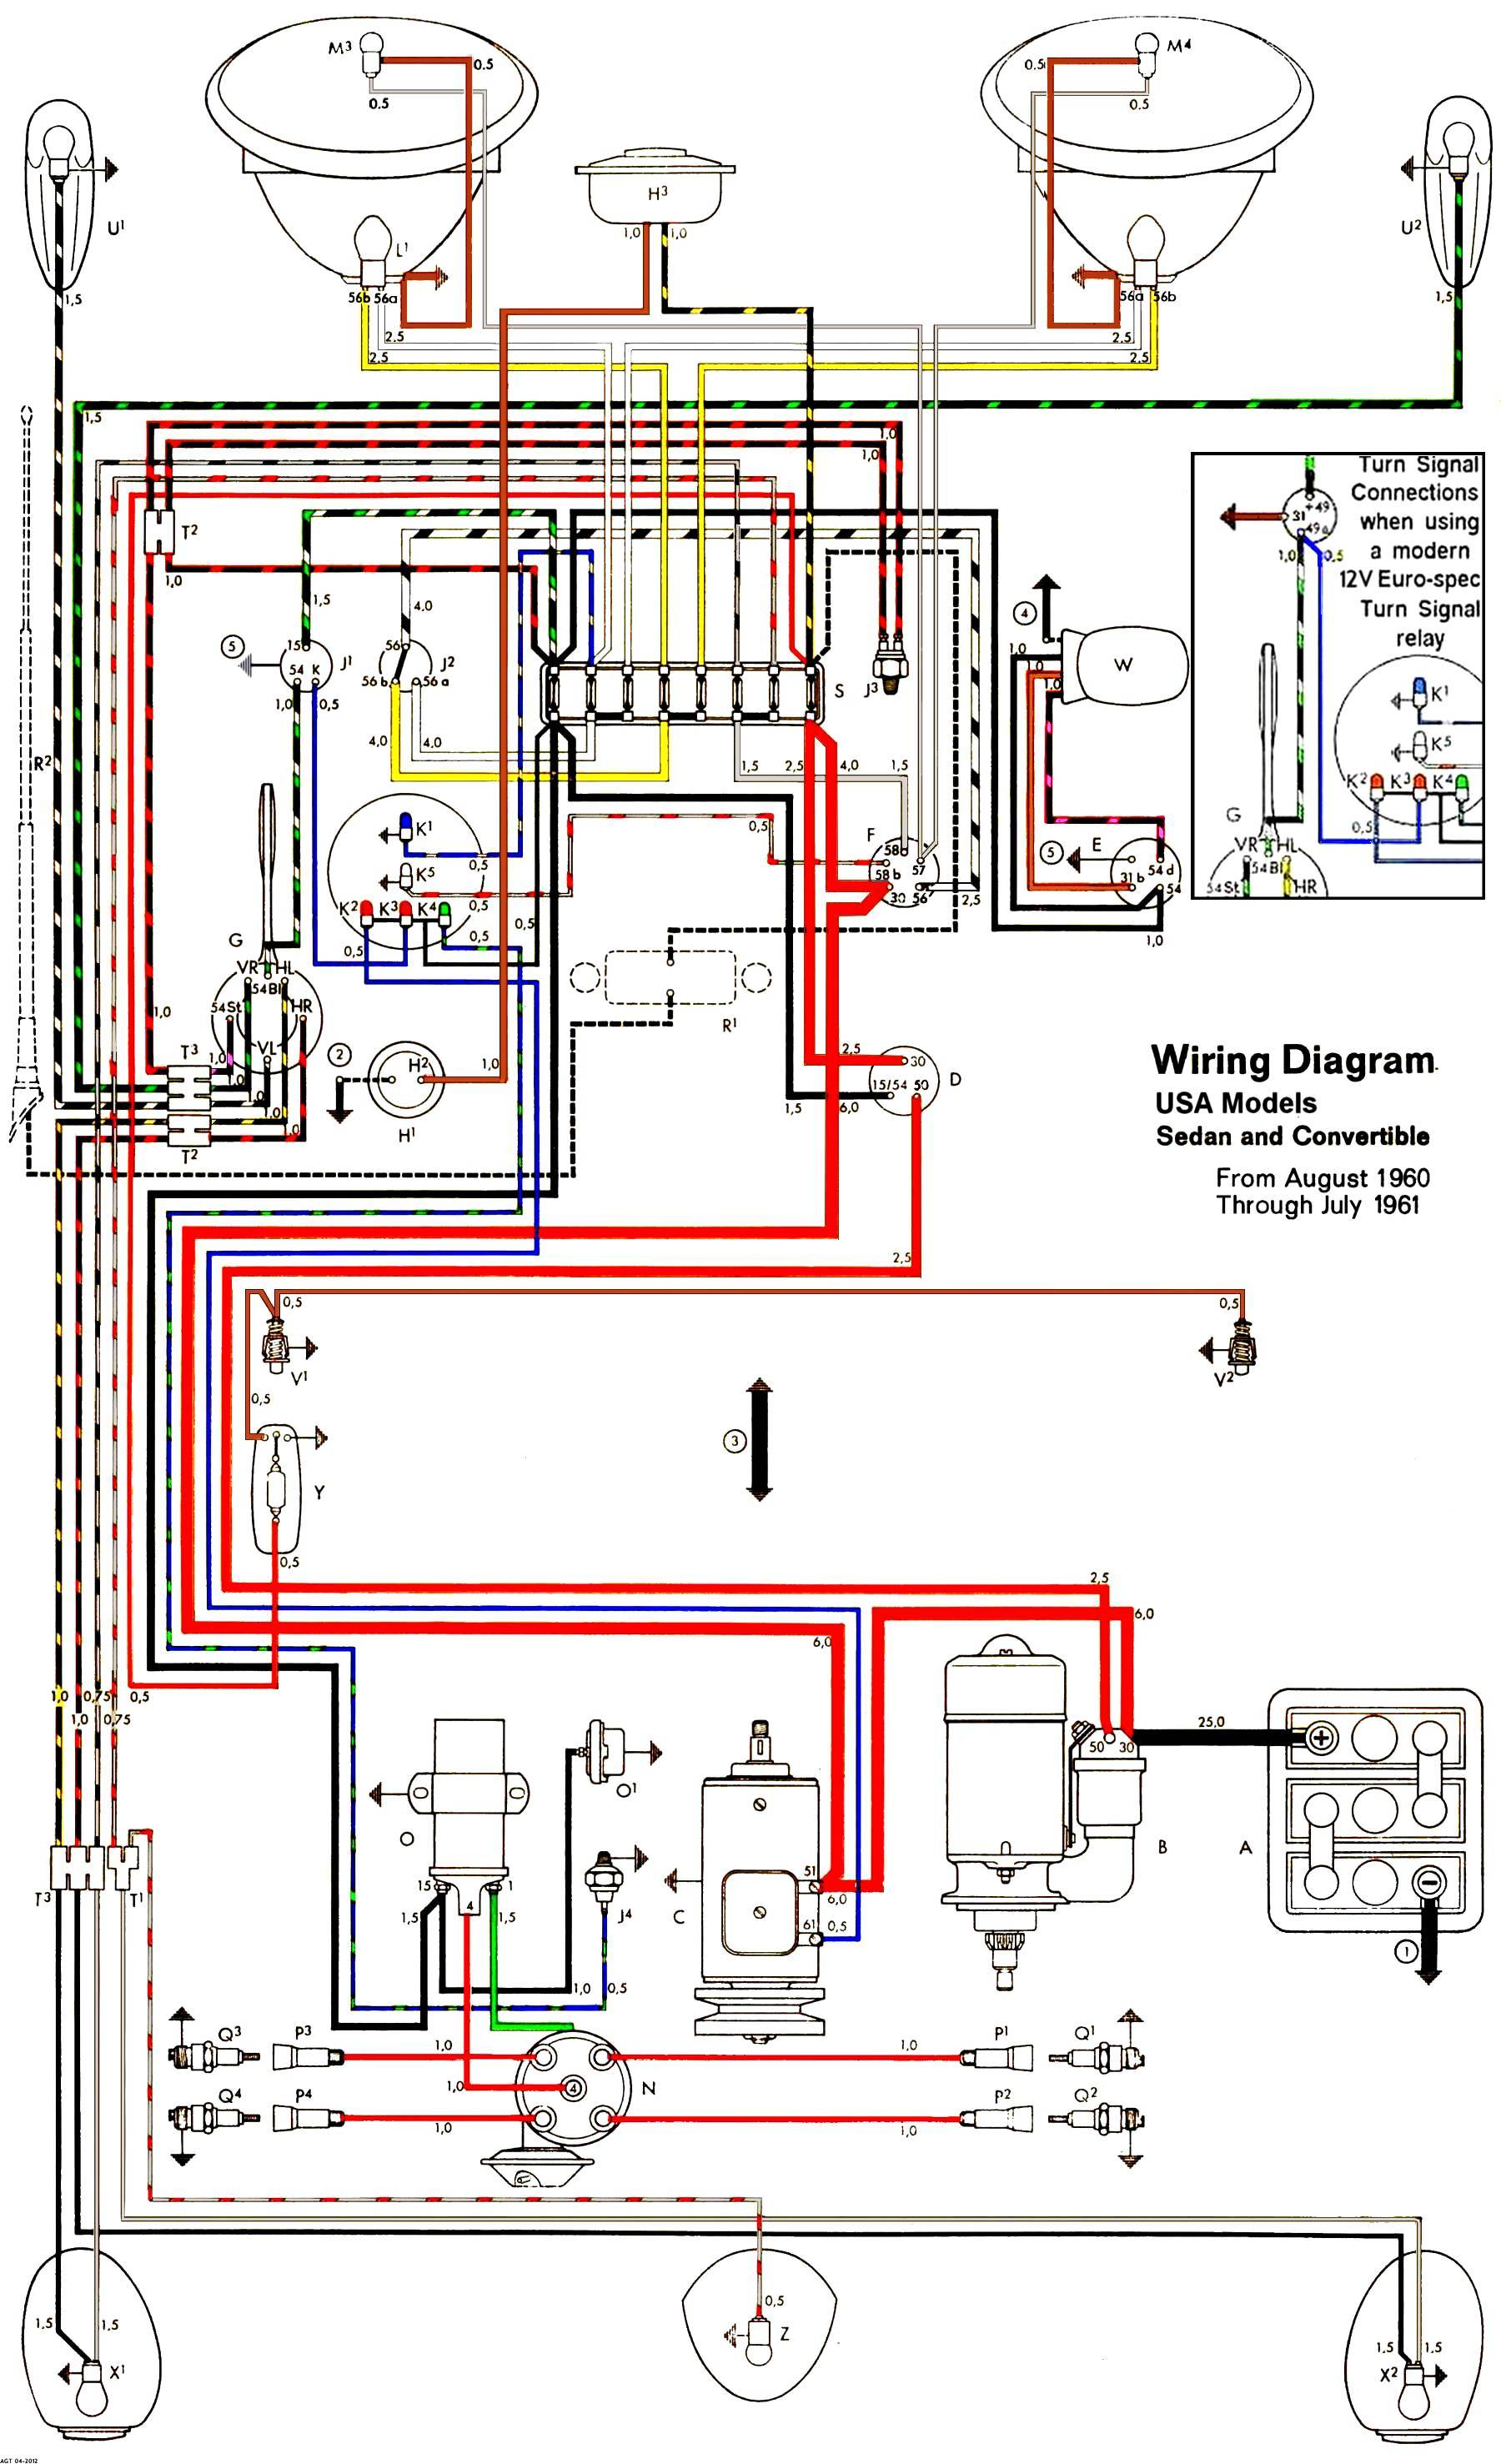 type 1 wiring diagrams. Black Bedroom Furniture Sets. Home Design Ideas